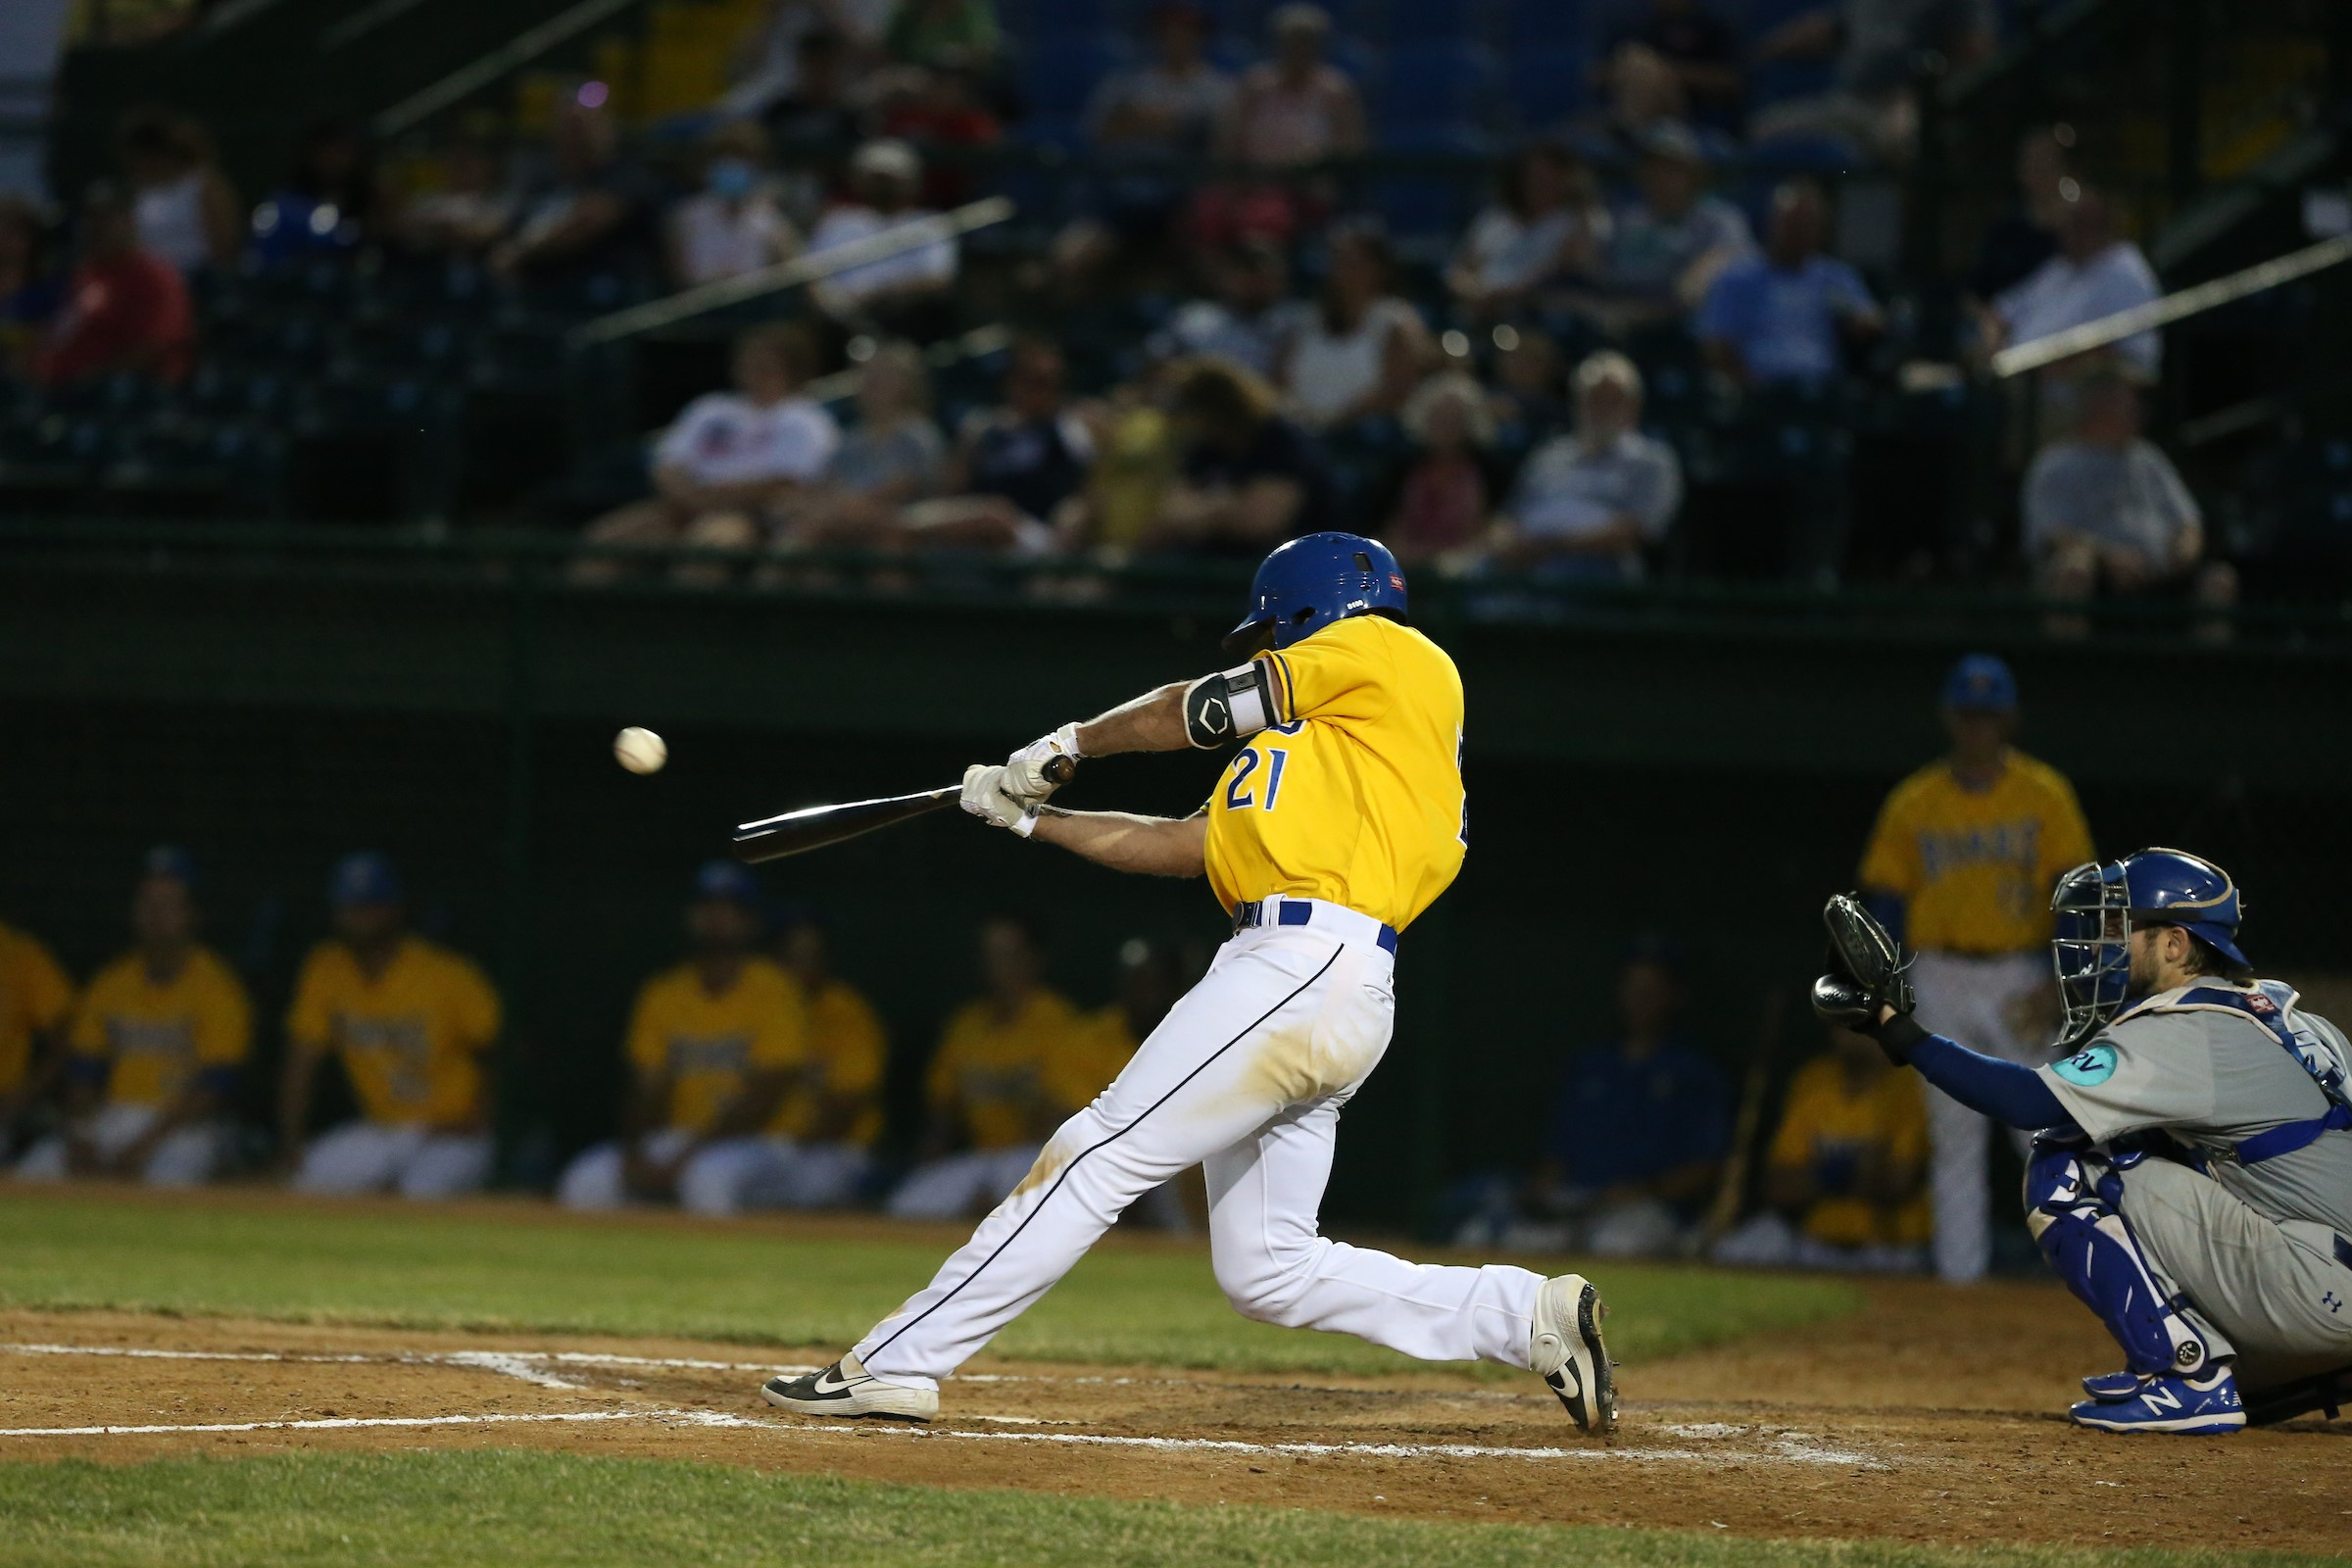 Photo Credit: Josh Jurgens / Sioux Falls Canaries